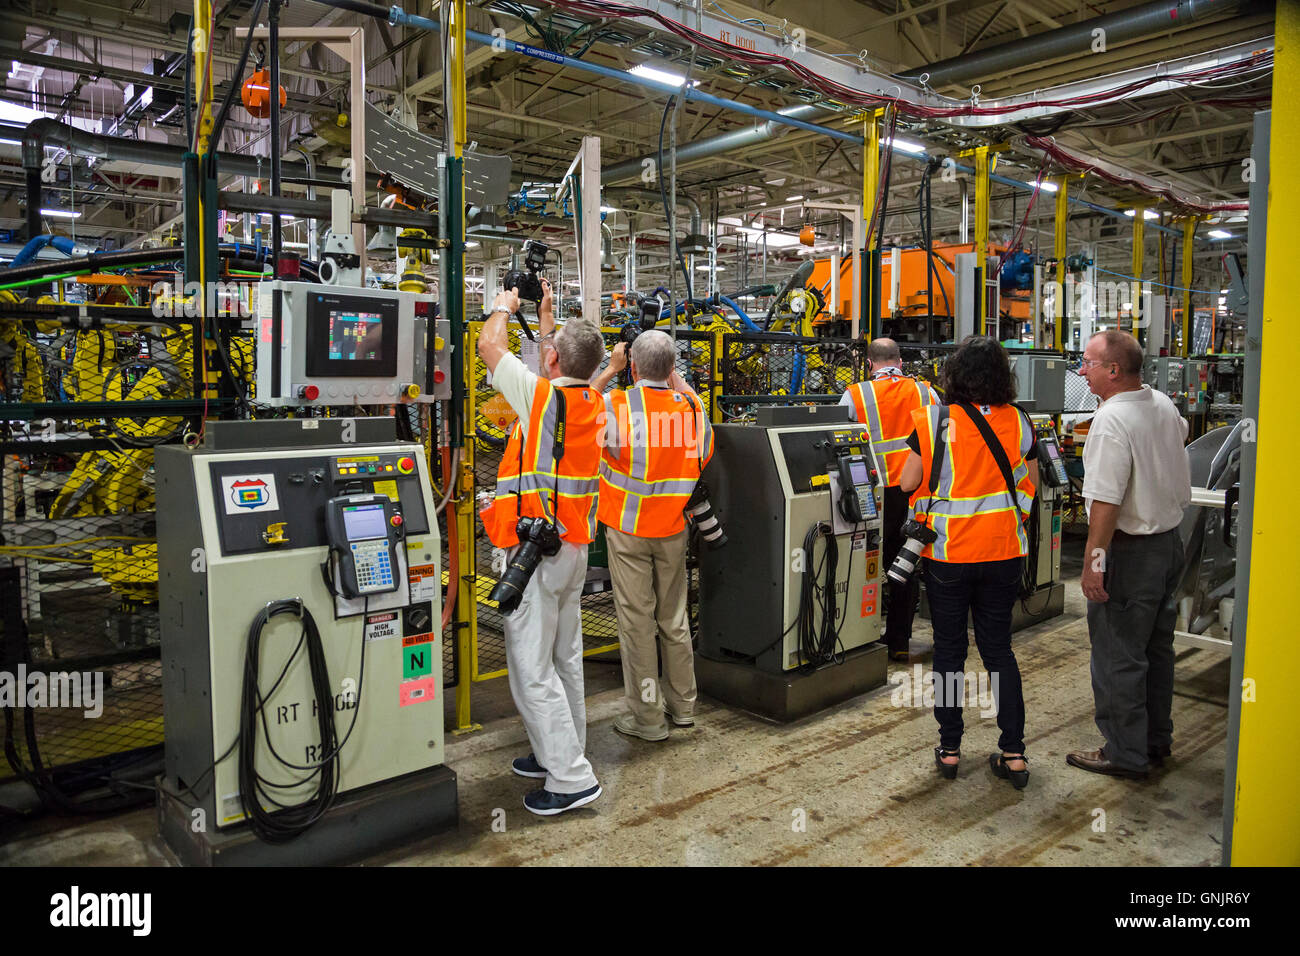 Sterling Heights, Michigan - Photojournalists take picutres of robots while on a media tour of FCA's Sterling - Stock Image